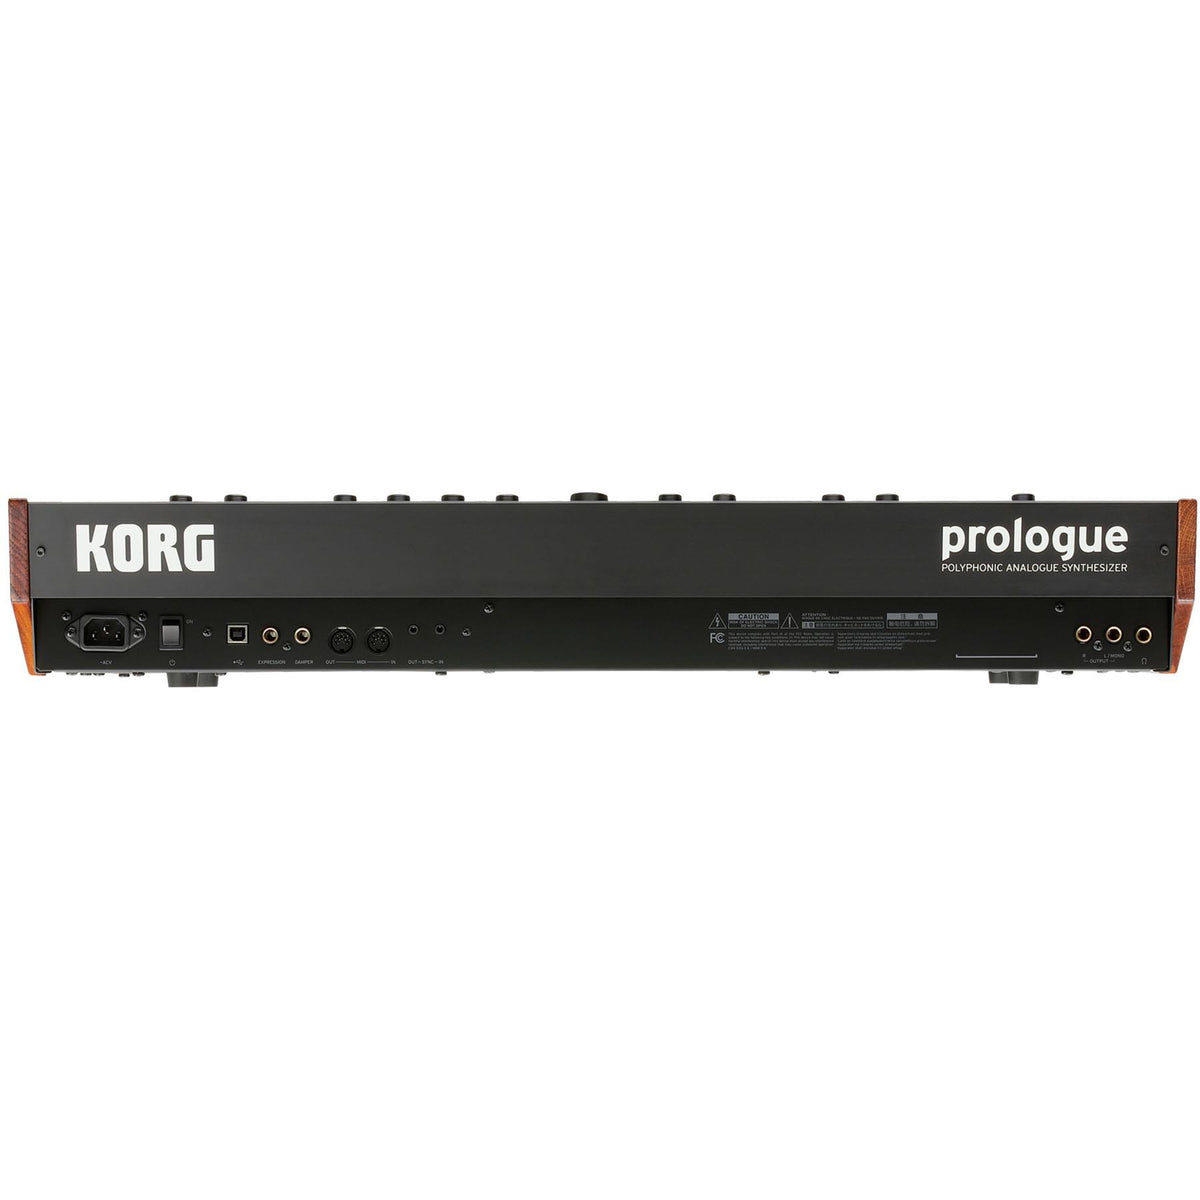 Korg Prologue 8 8-Voice 49-Key Analog Synthesizer